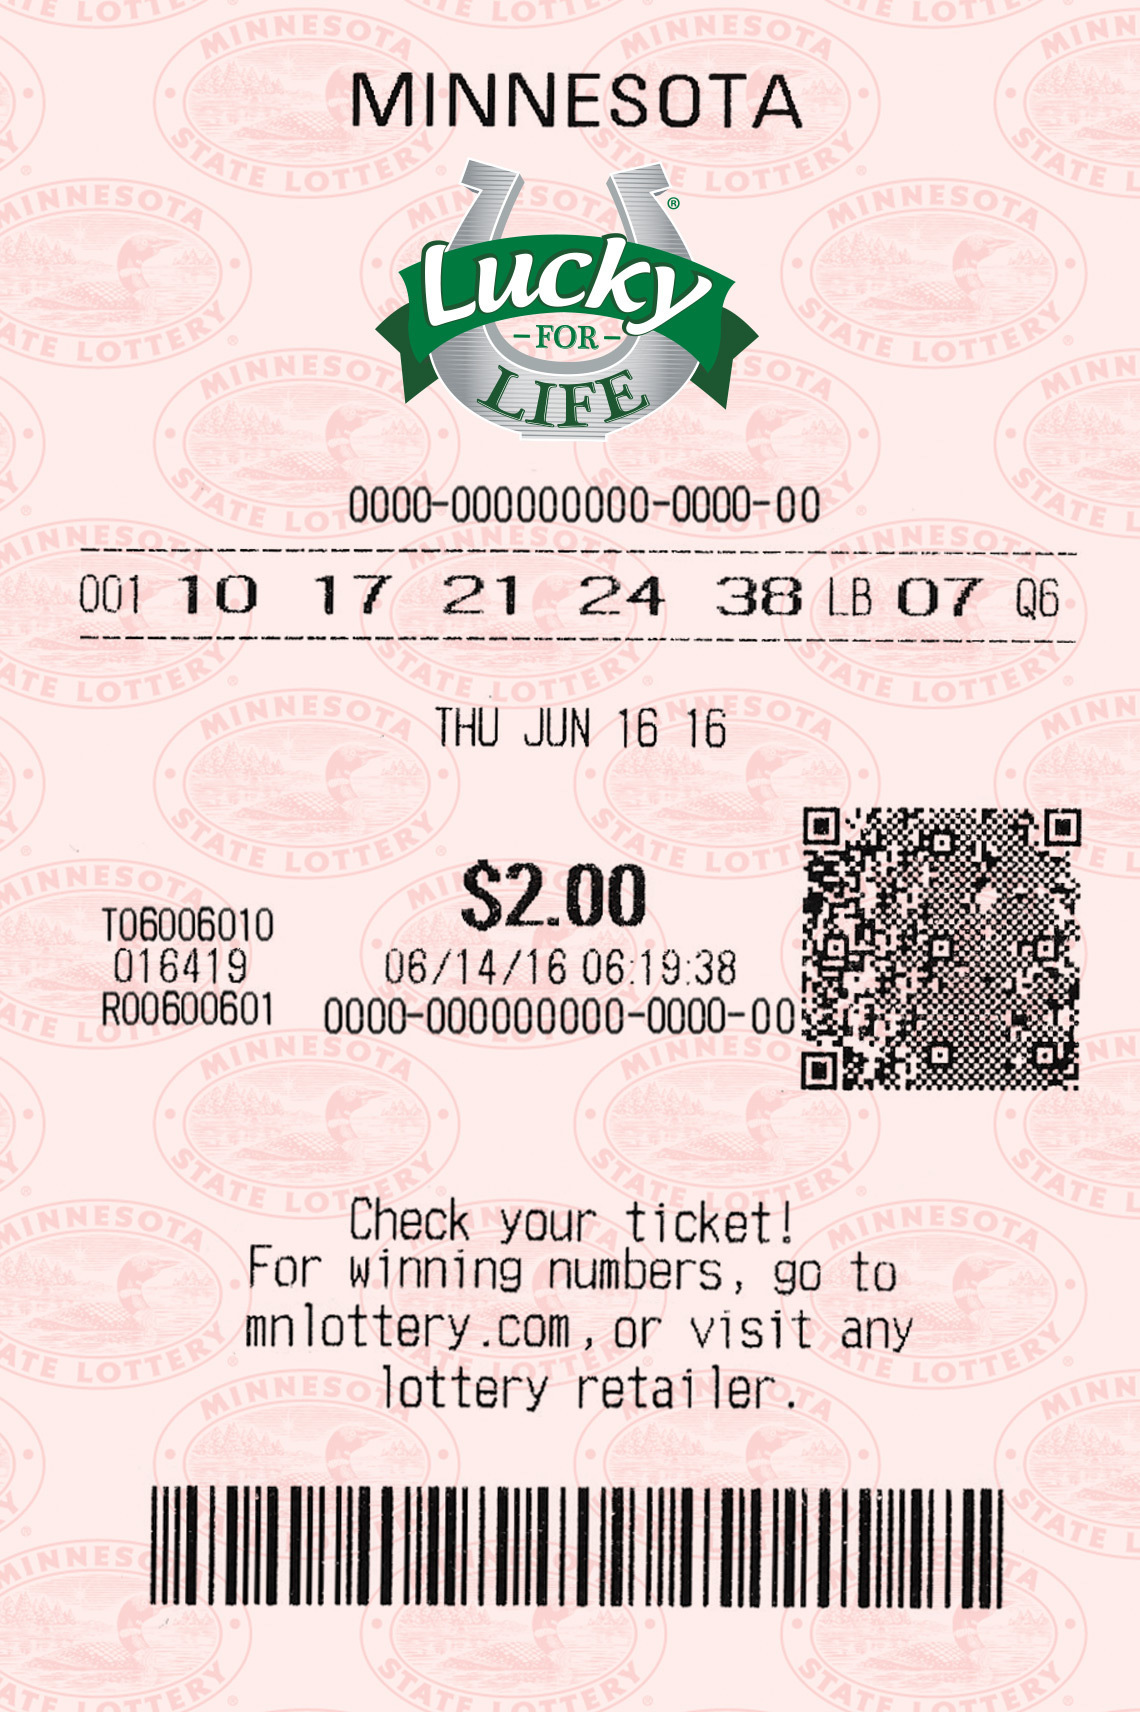 Lucky For Life - Minnesota Lottery